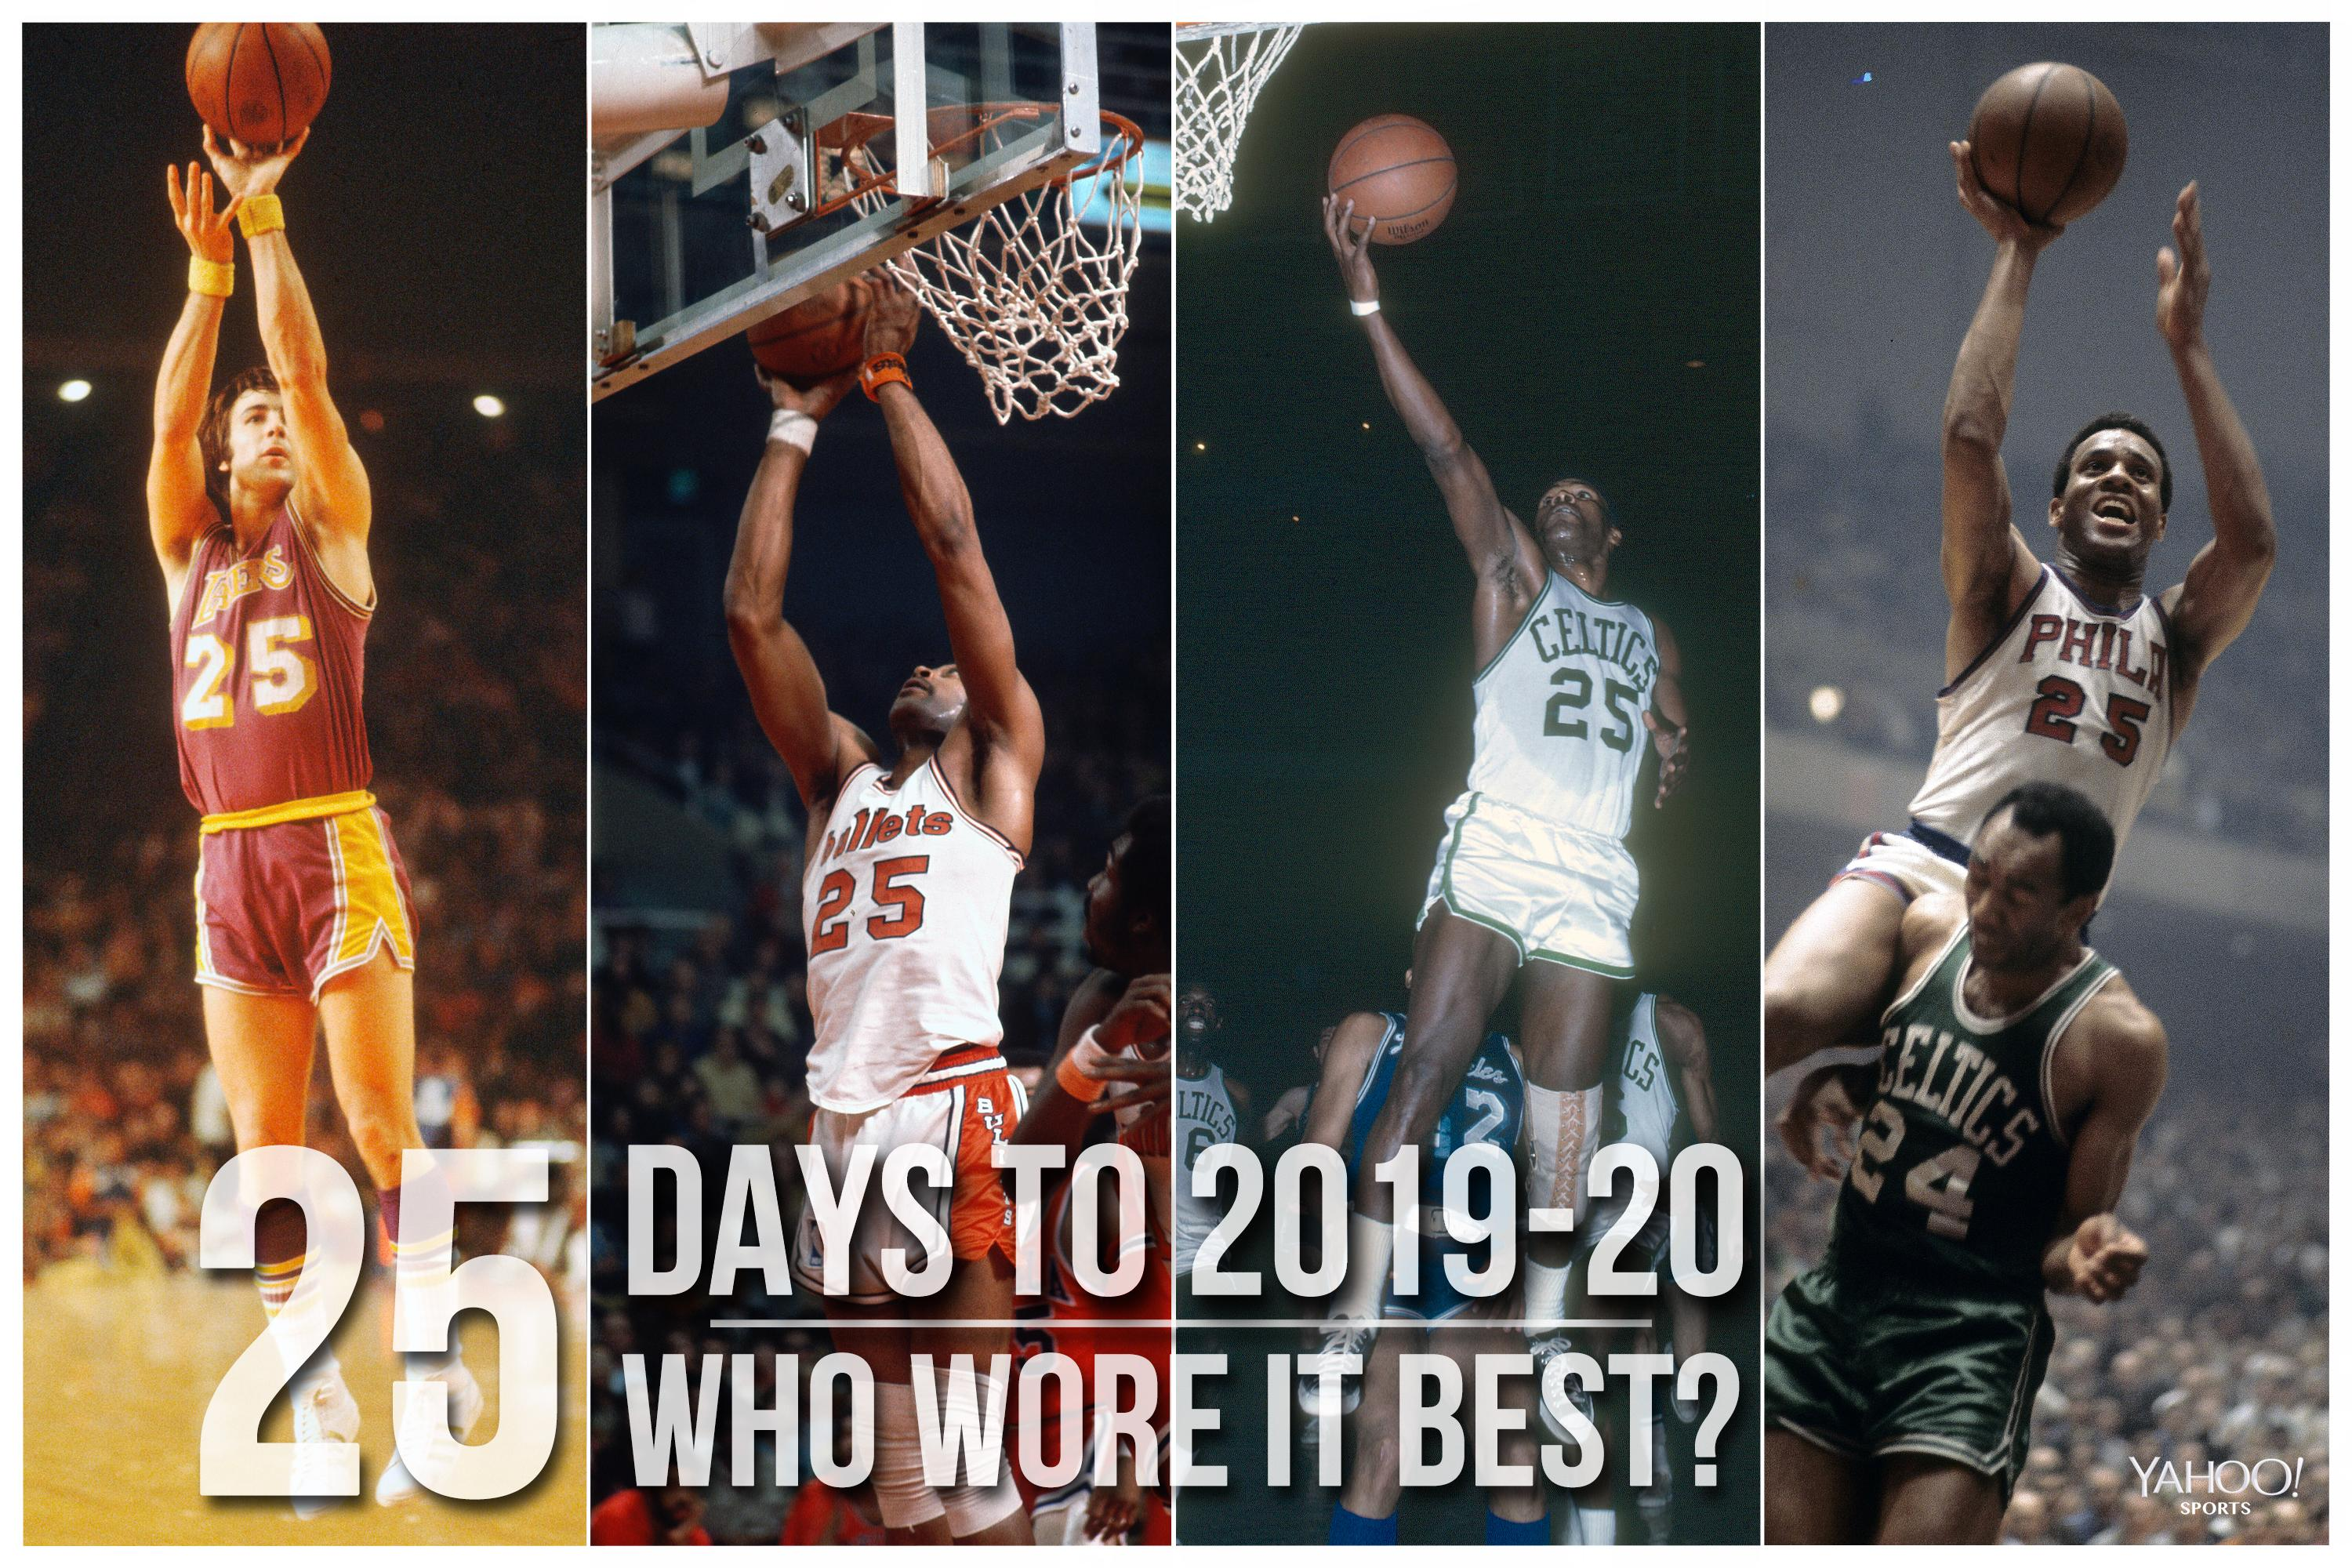 NBA Countdown: Who wore No. 25 best?